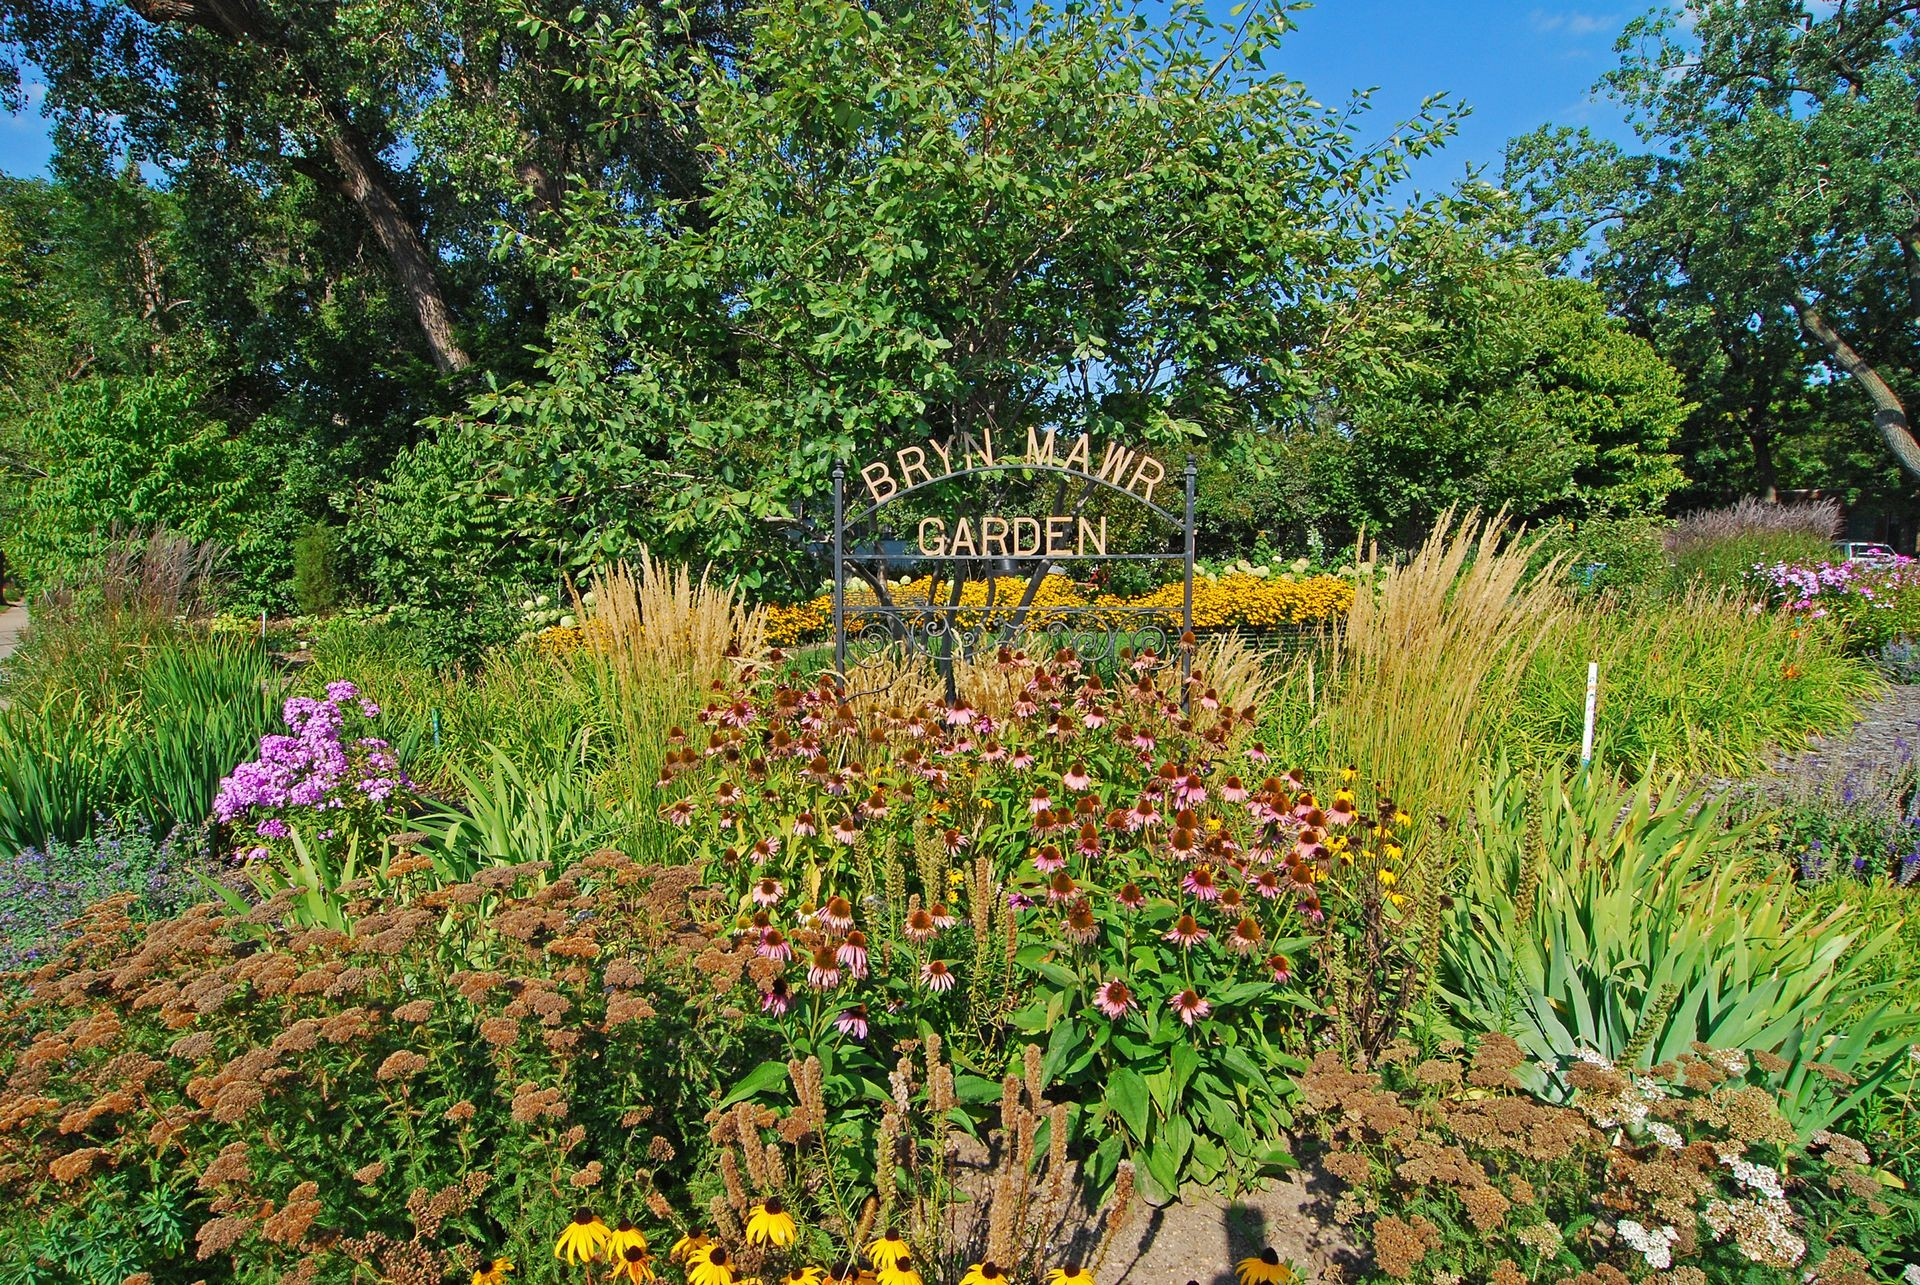 Bryn Mawr Garden in Minneapolis